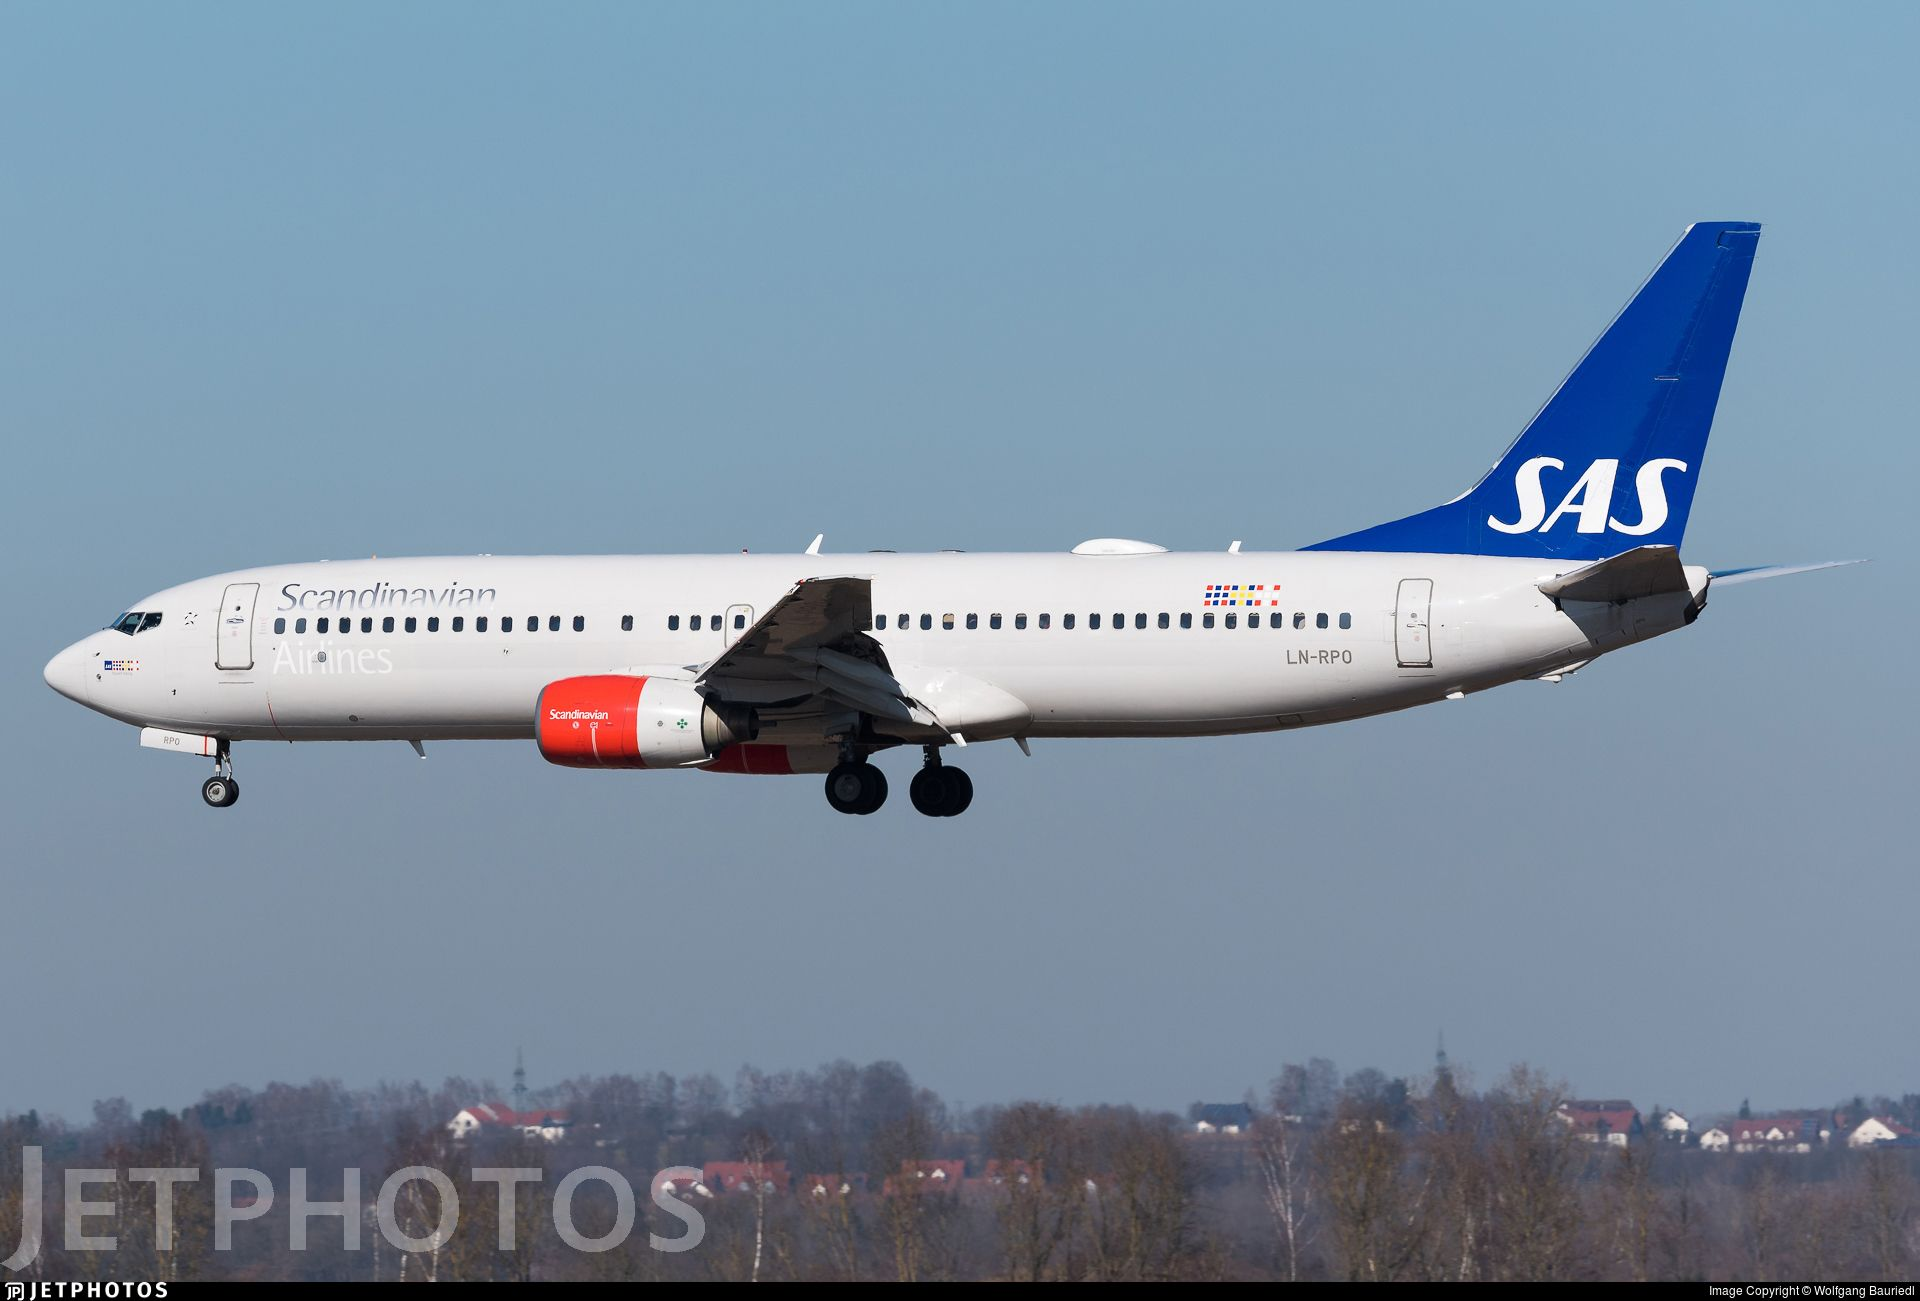 Sas Airbus A380 Scandinavian Airline System Scandinavian Airlines System Scandinavian Airline Check In